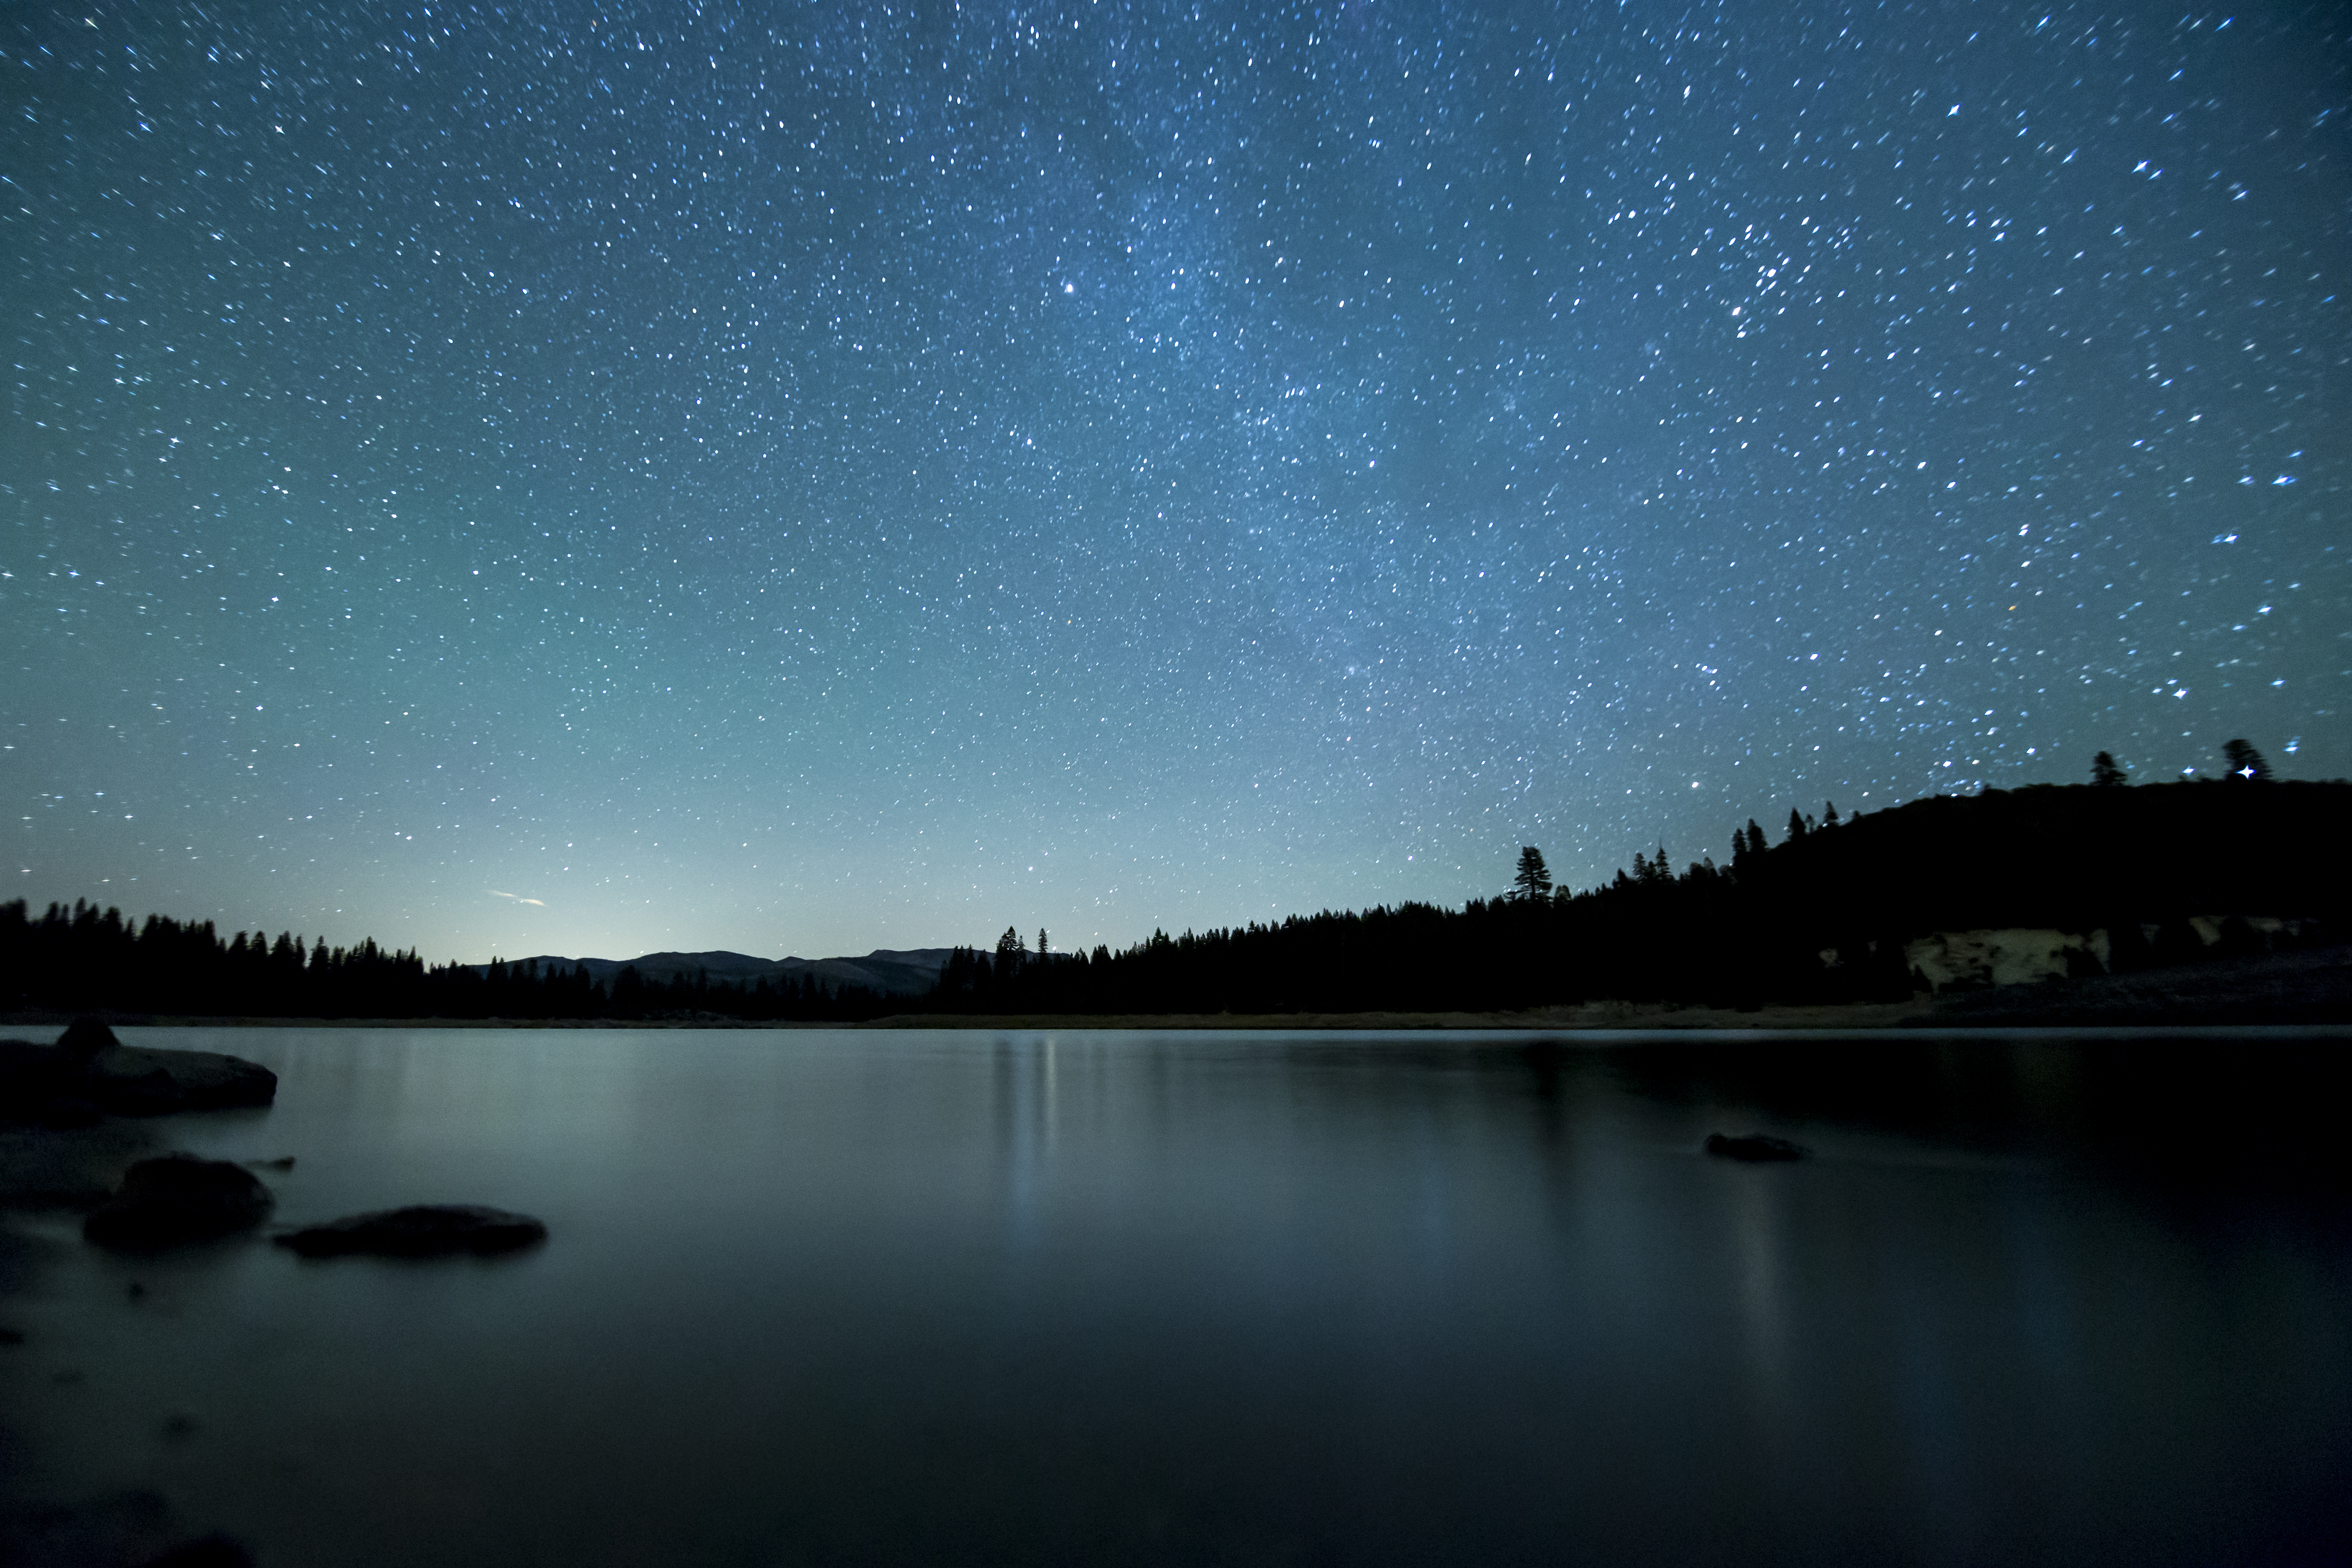 Star Dust Over the Lake